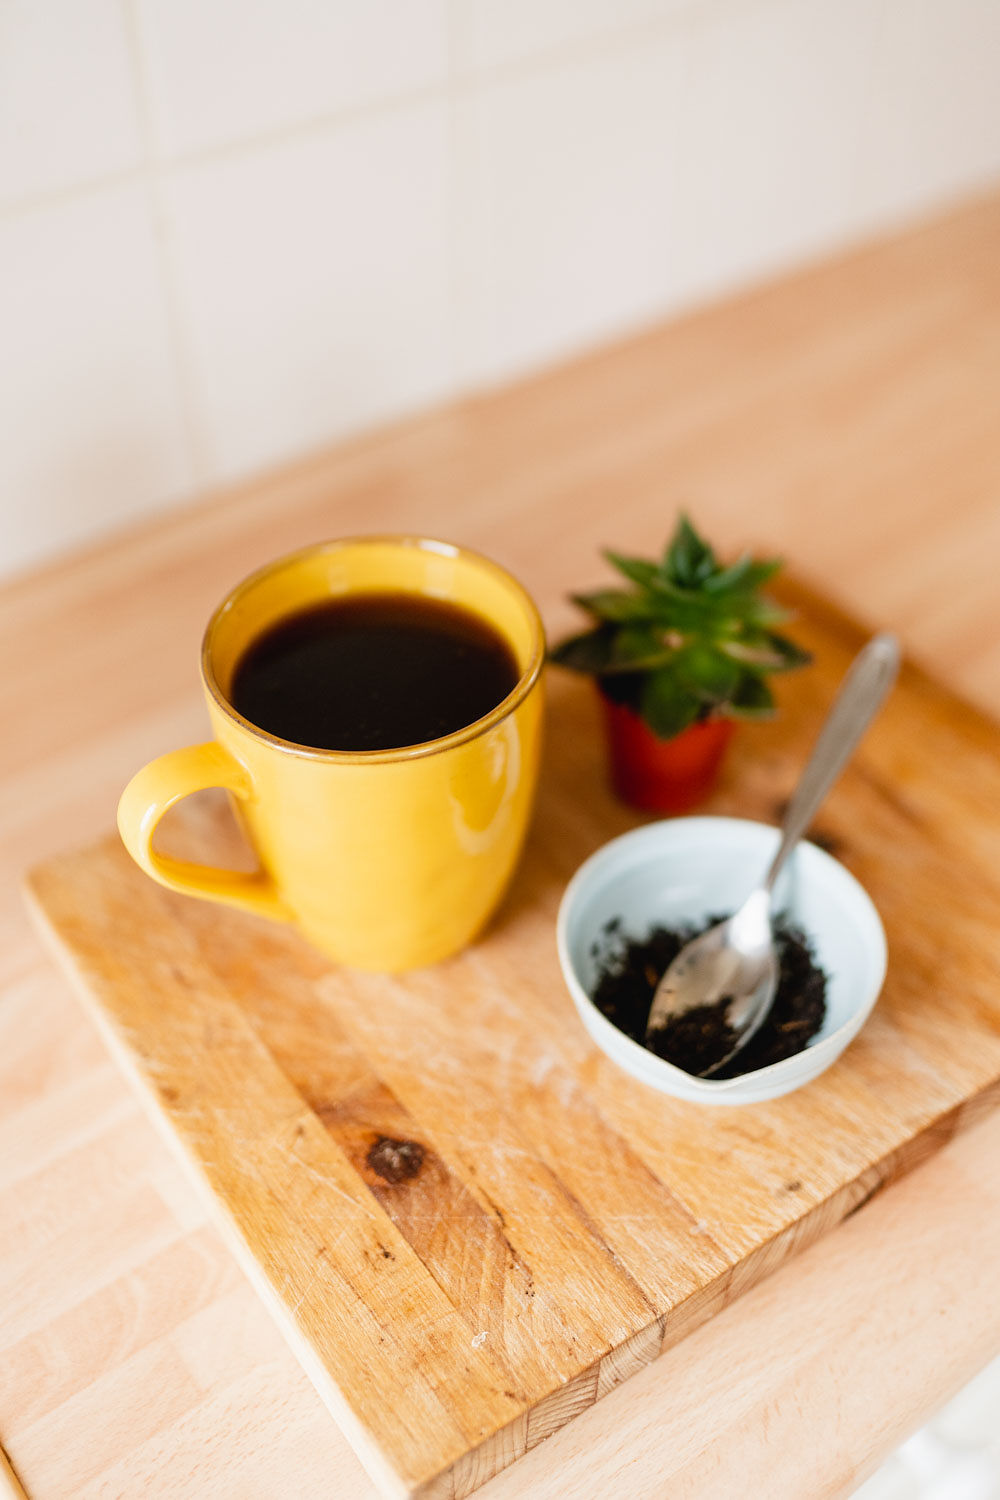 Yellow mug with tea on a wooden chopping board next to a small bowl of loose leaf tea and a small succulent - perfect for a writing ritual.